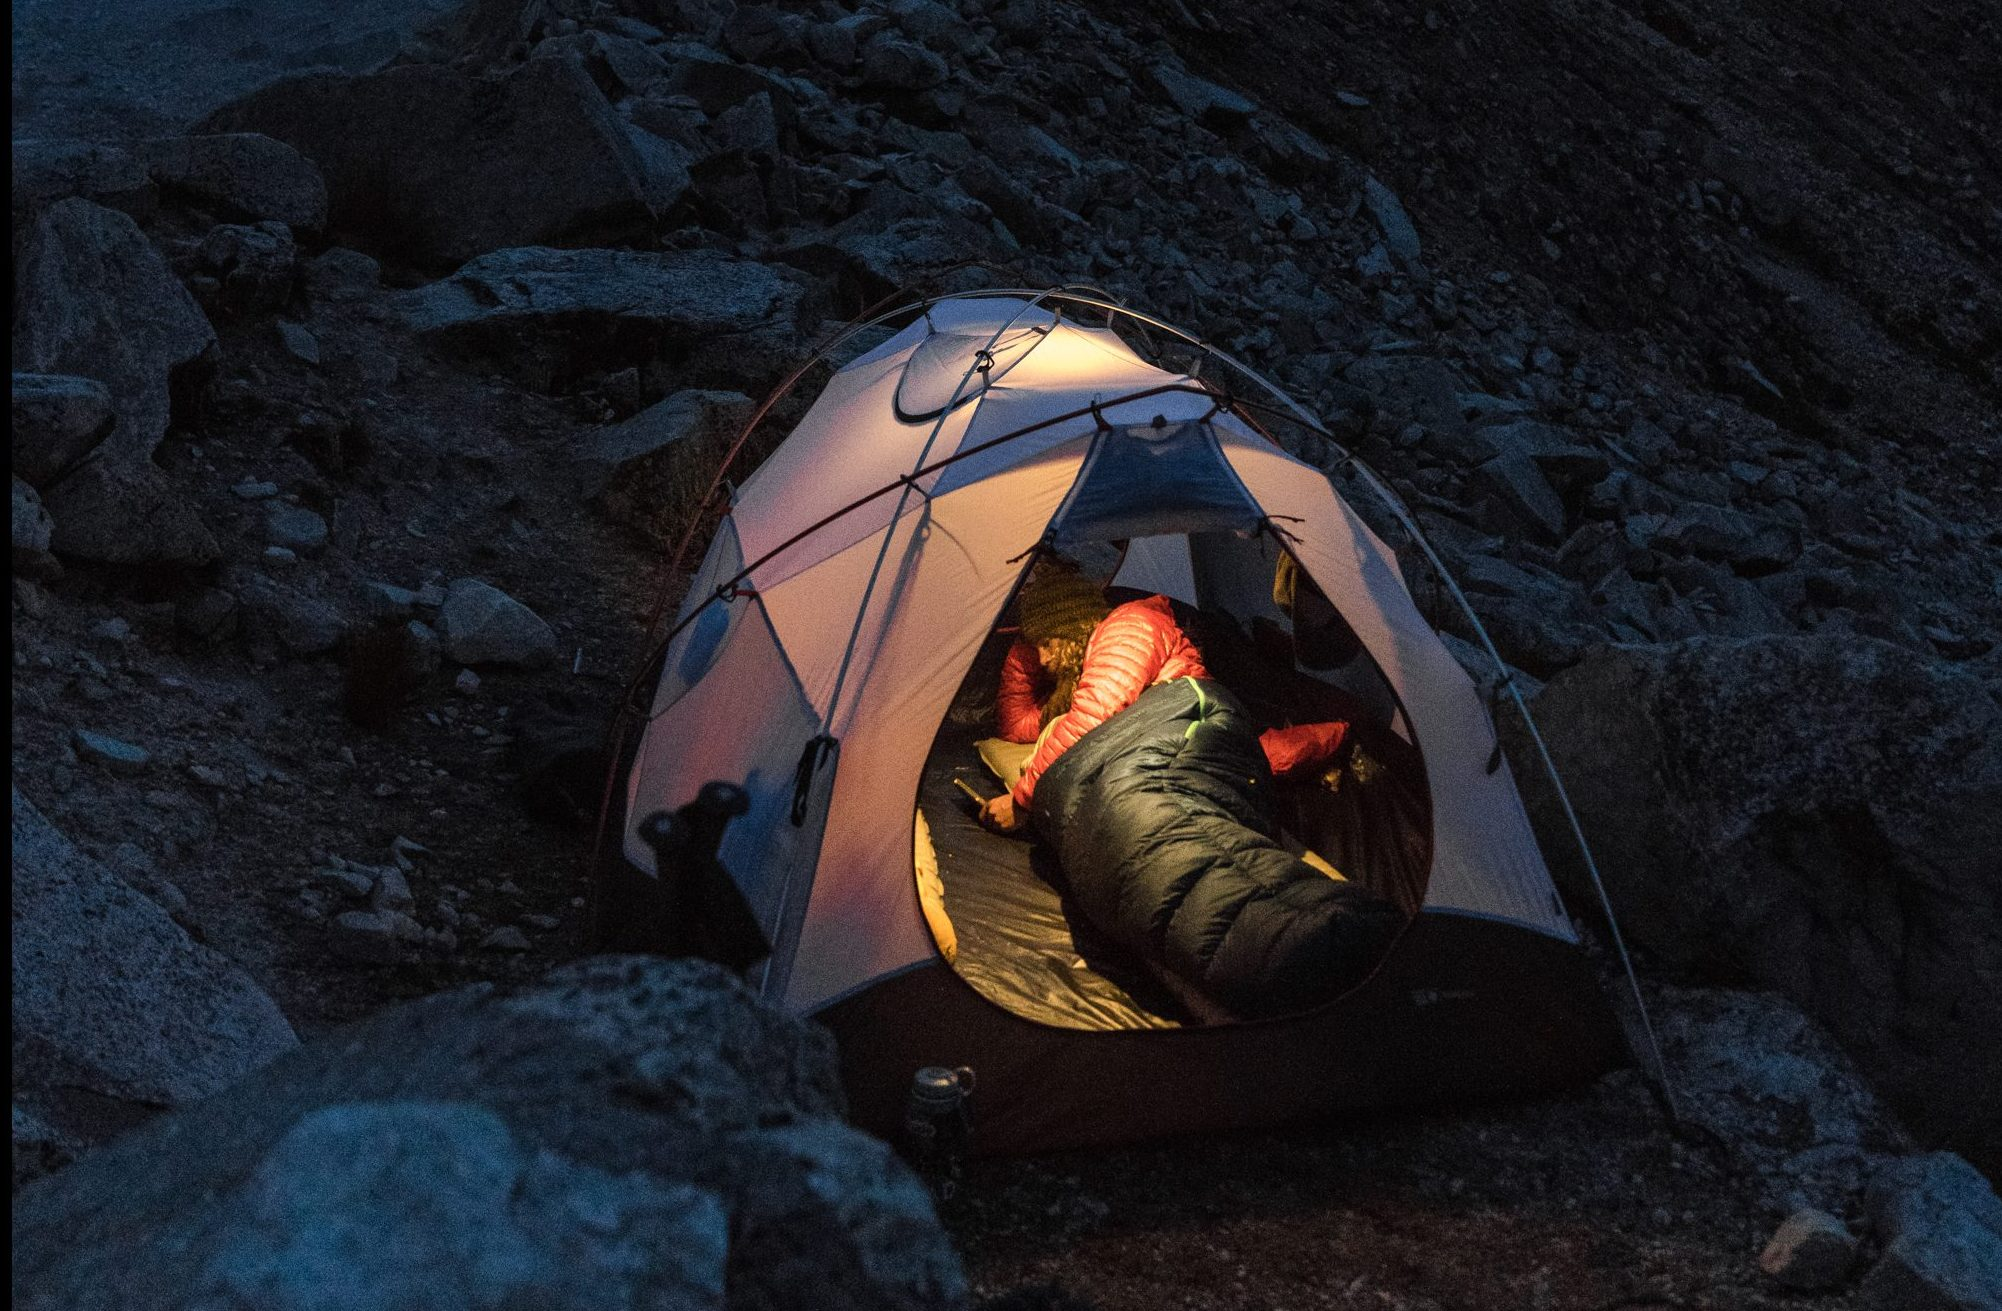 camper in tent in sleeping bag at night